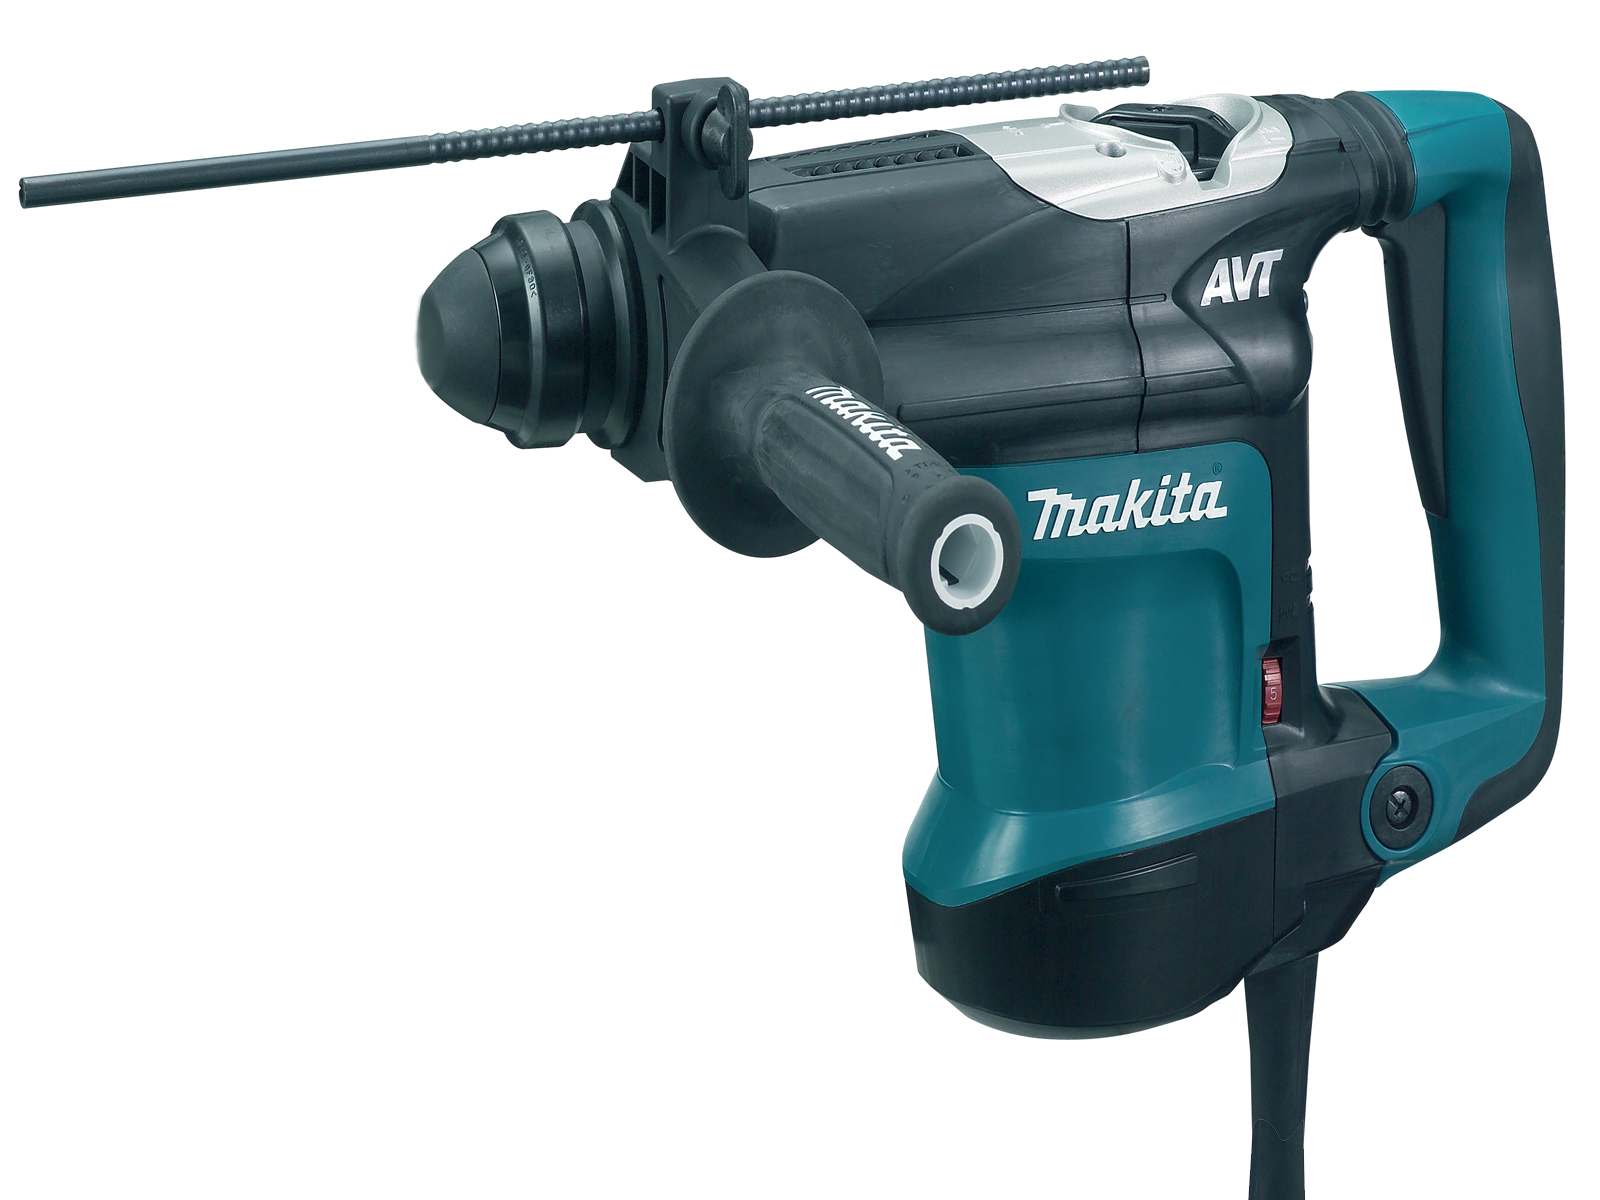 Makita HR3210C 110V 32mm SDS-Plus Rotary Hammer Drill 32mm 3-Mode